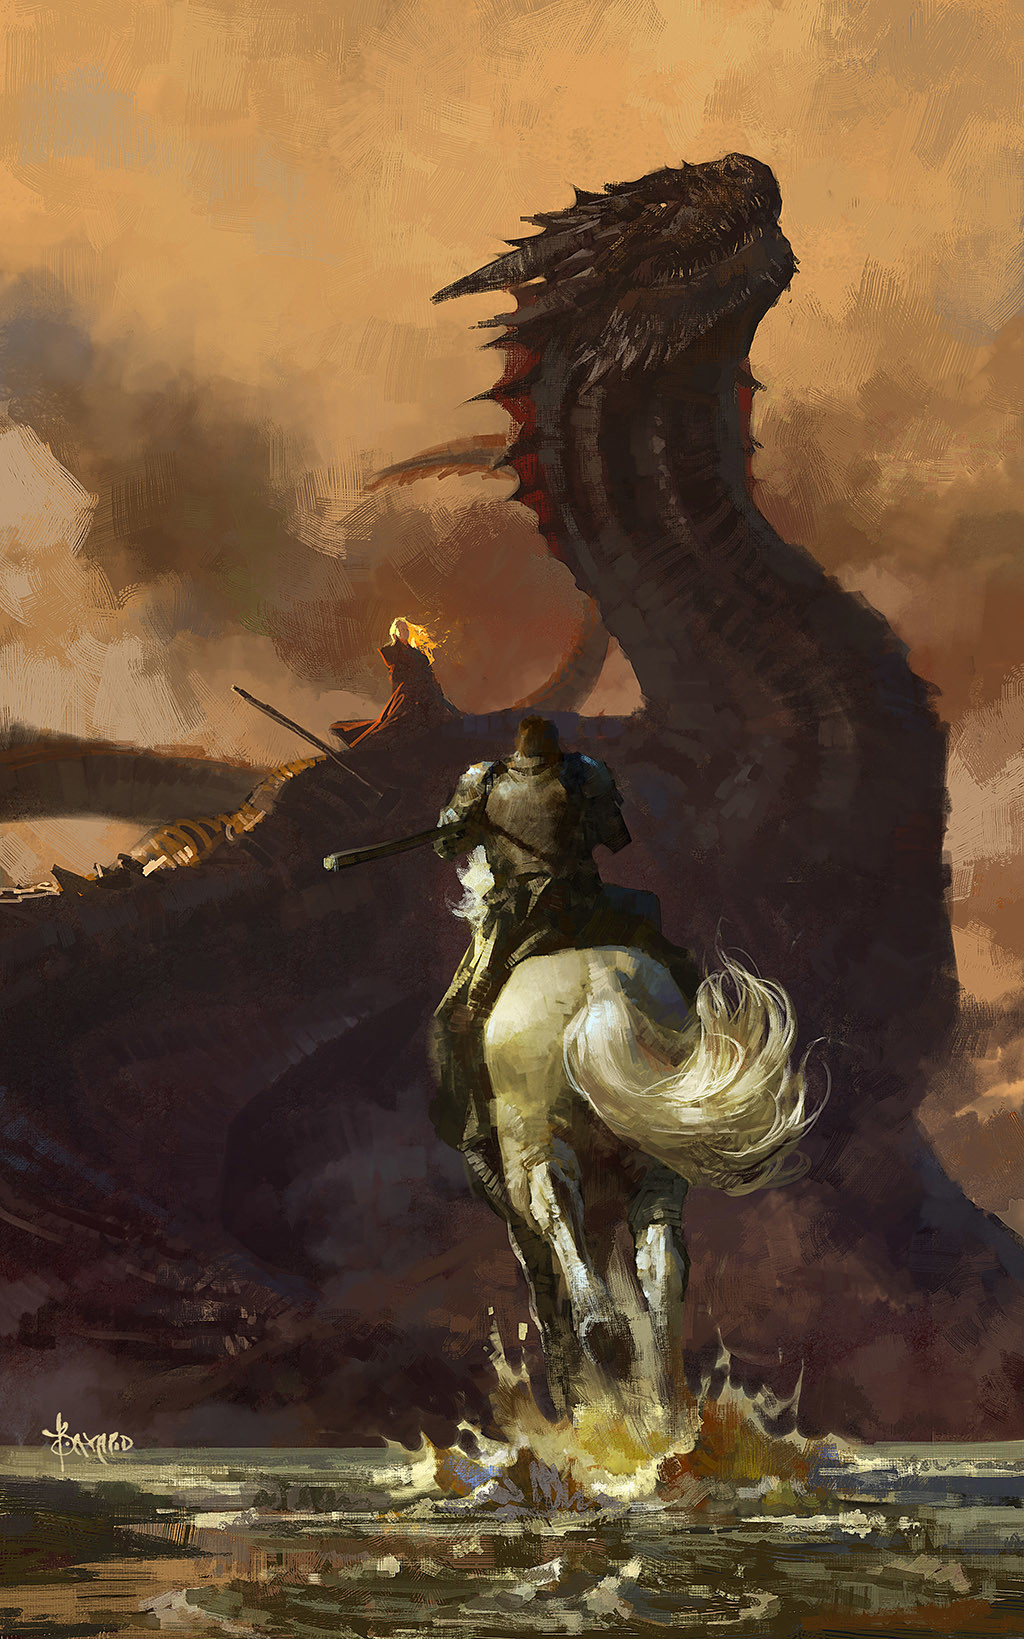 digital-painting-bayard-wu-game-of-thrones